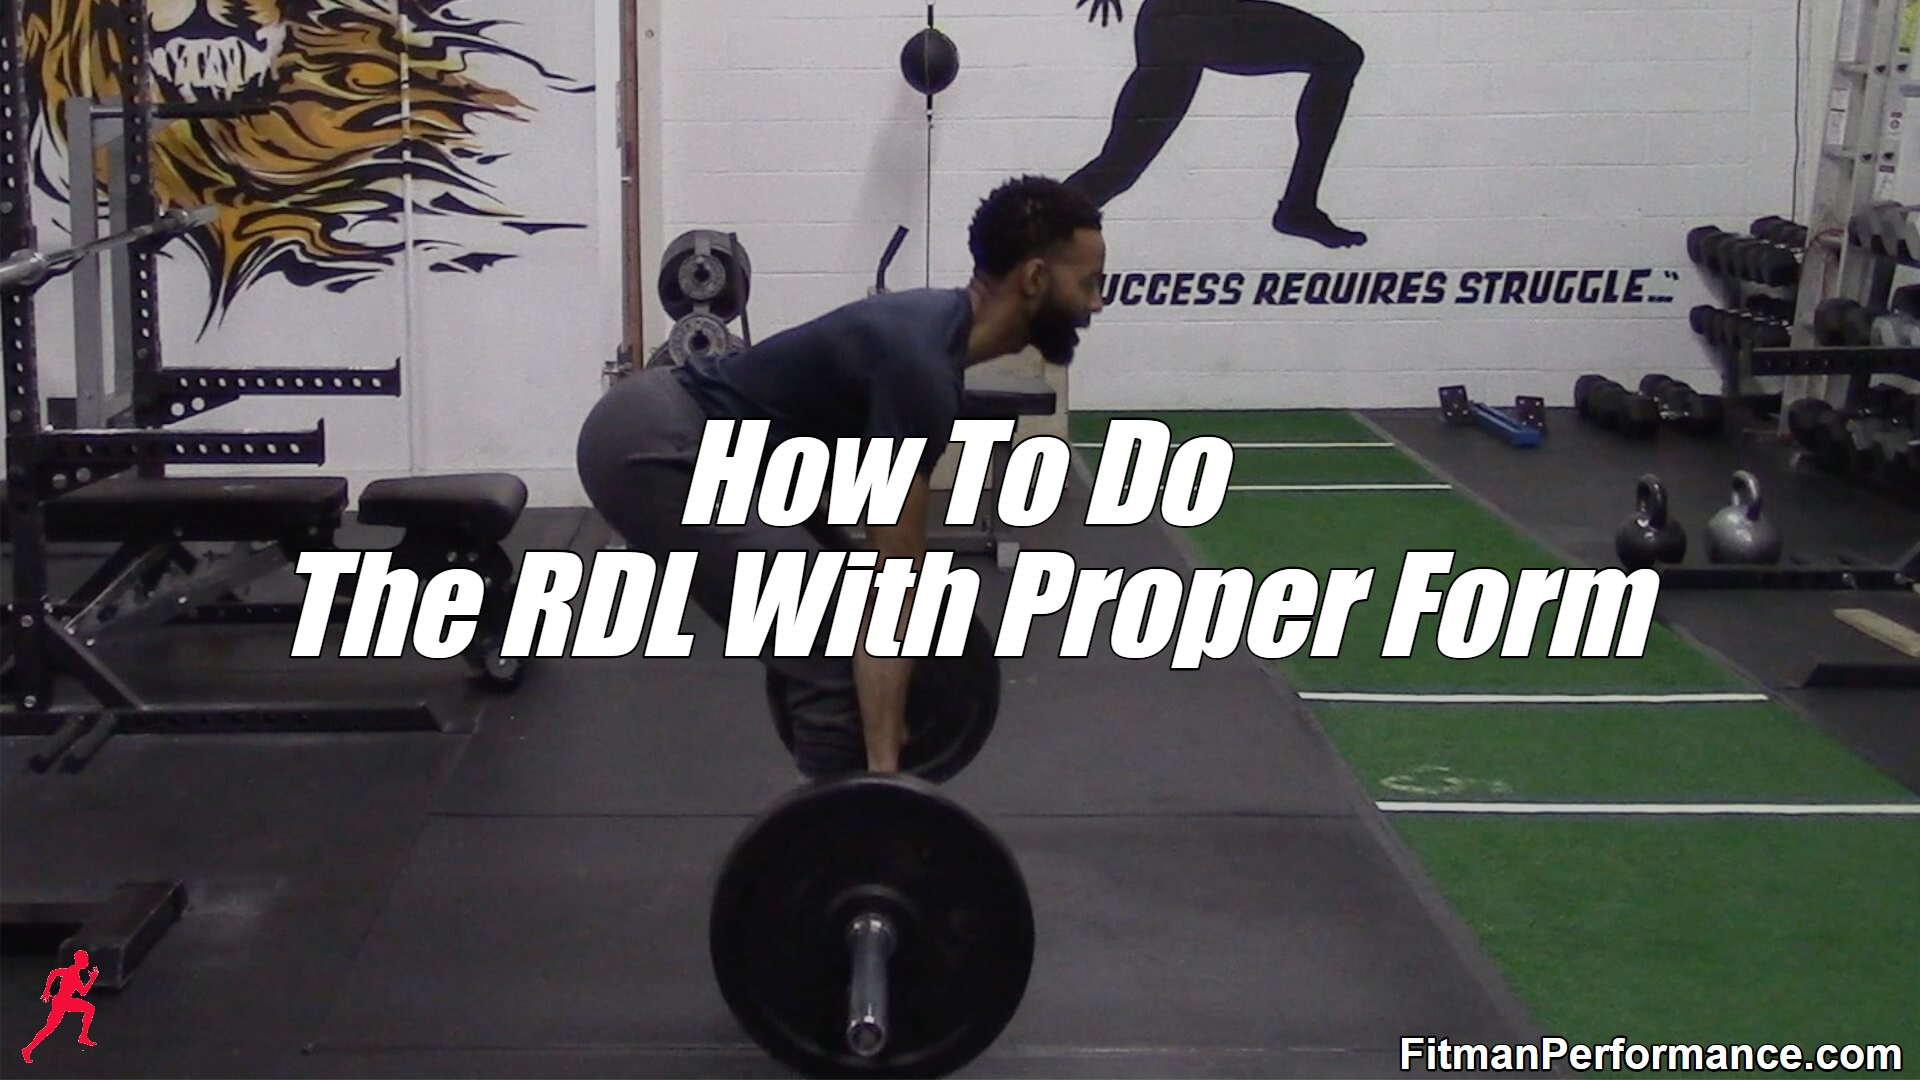 How To Do The RDL With Proper Form